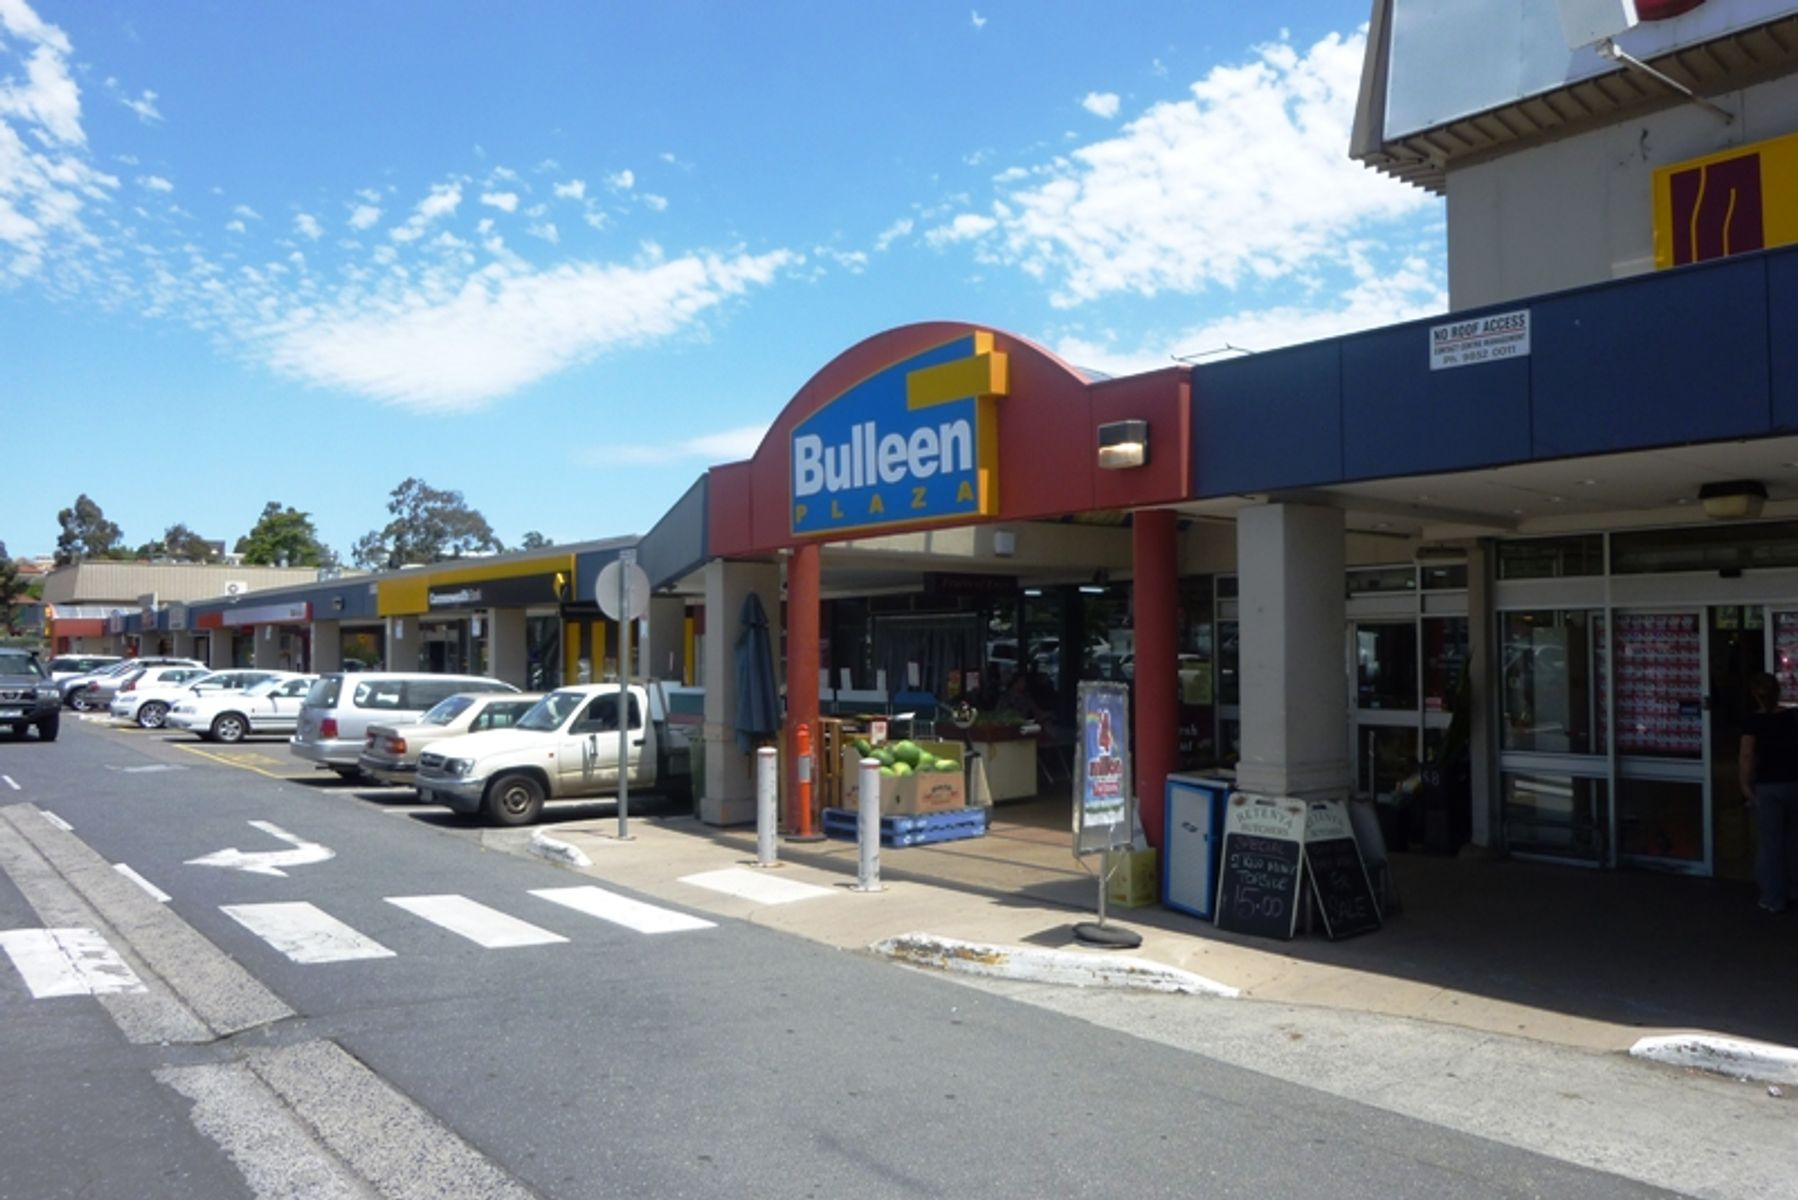 Copy of Bulleen Plaza, Shop 16, Buleen 02